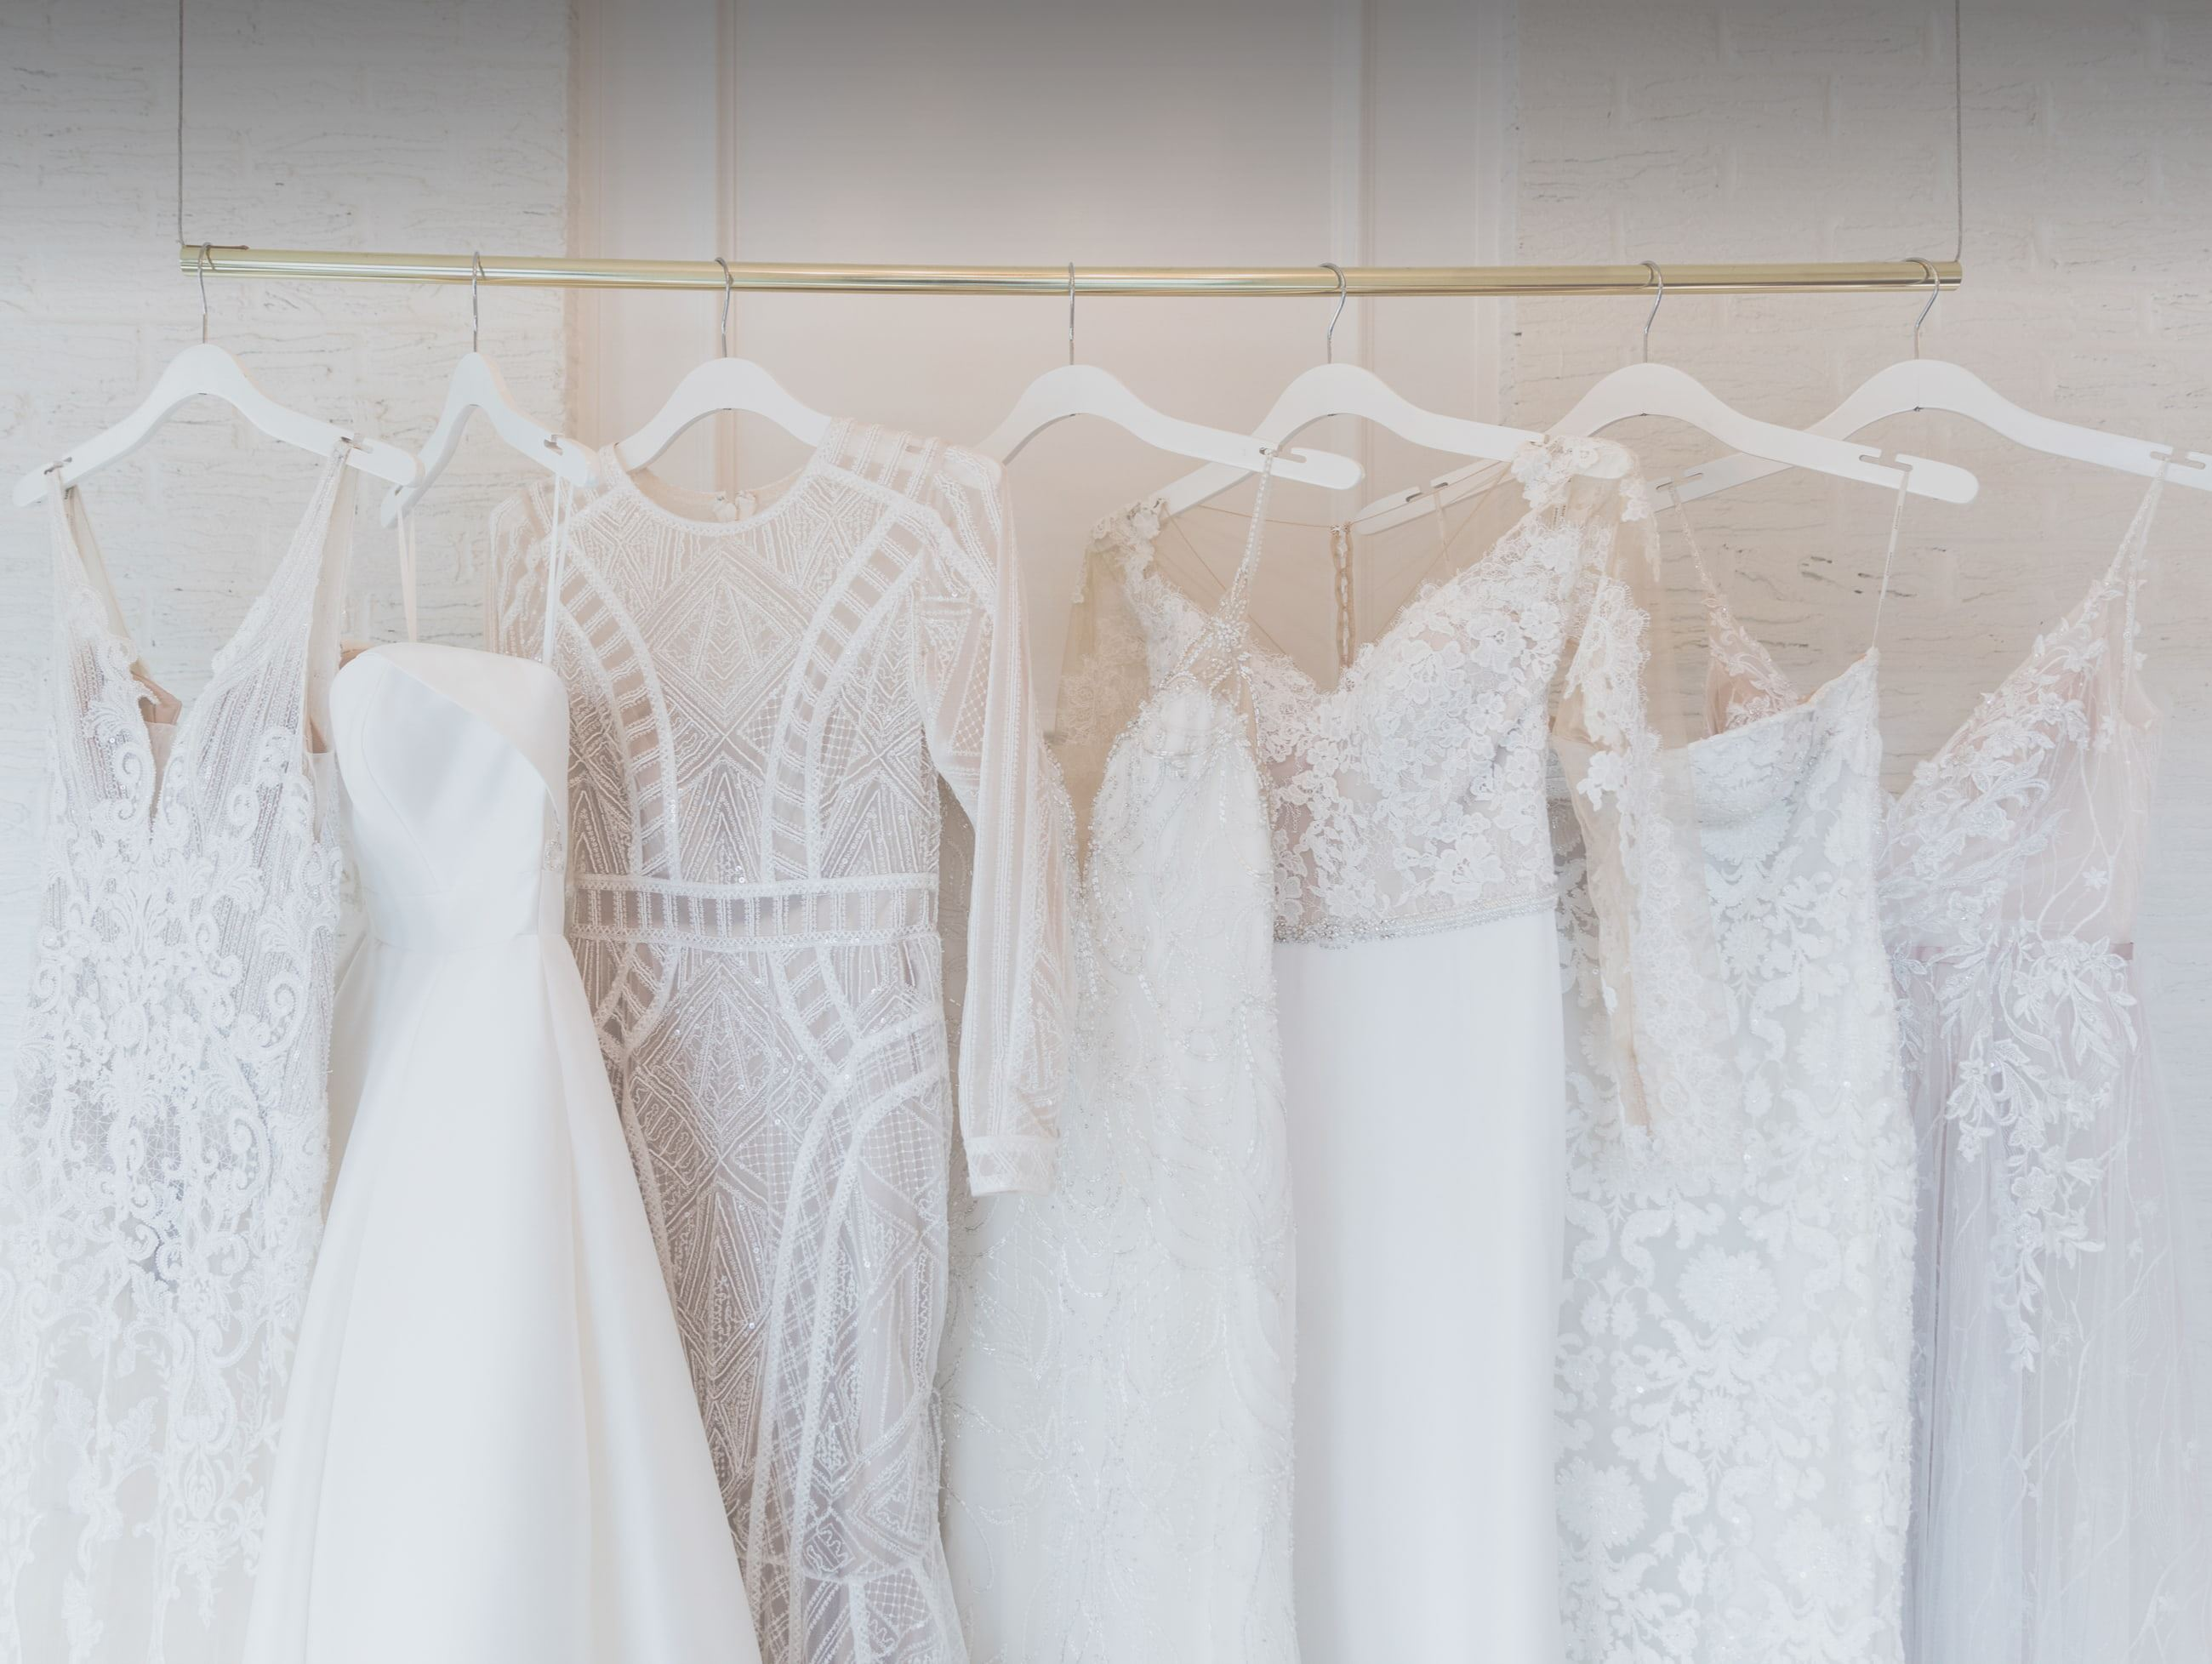 Bridal Extraordinaire Wedding Dresses in Shawnee, Kansas